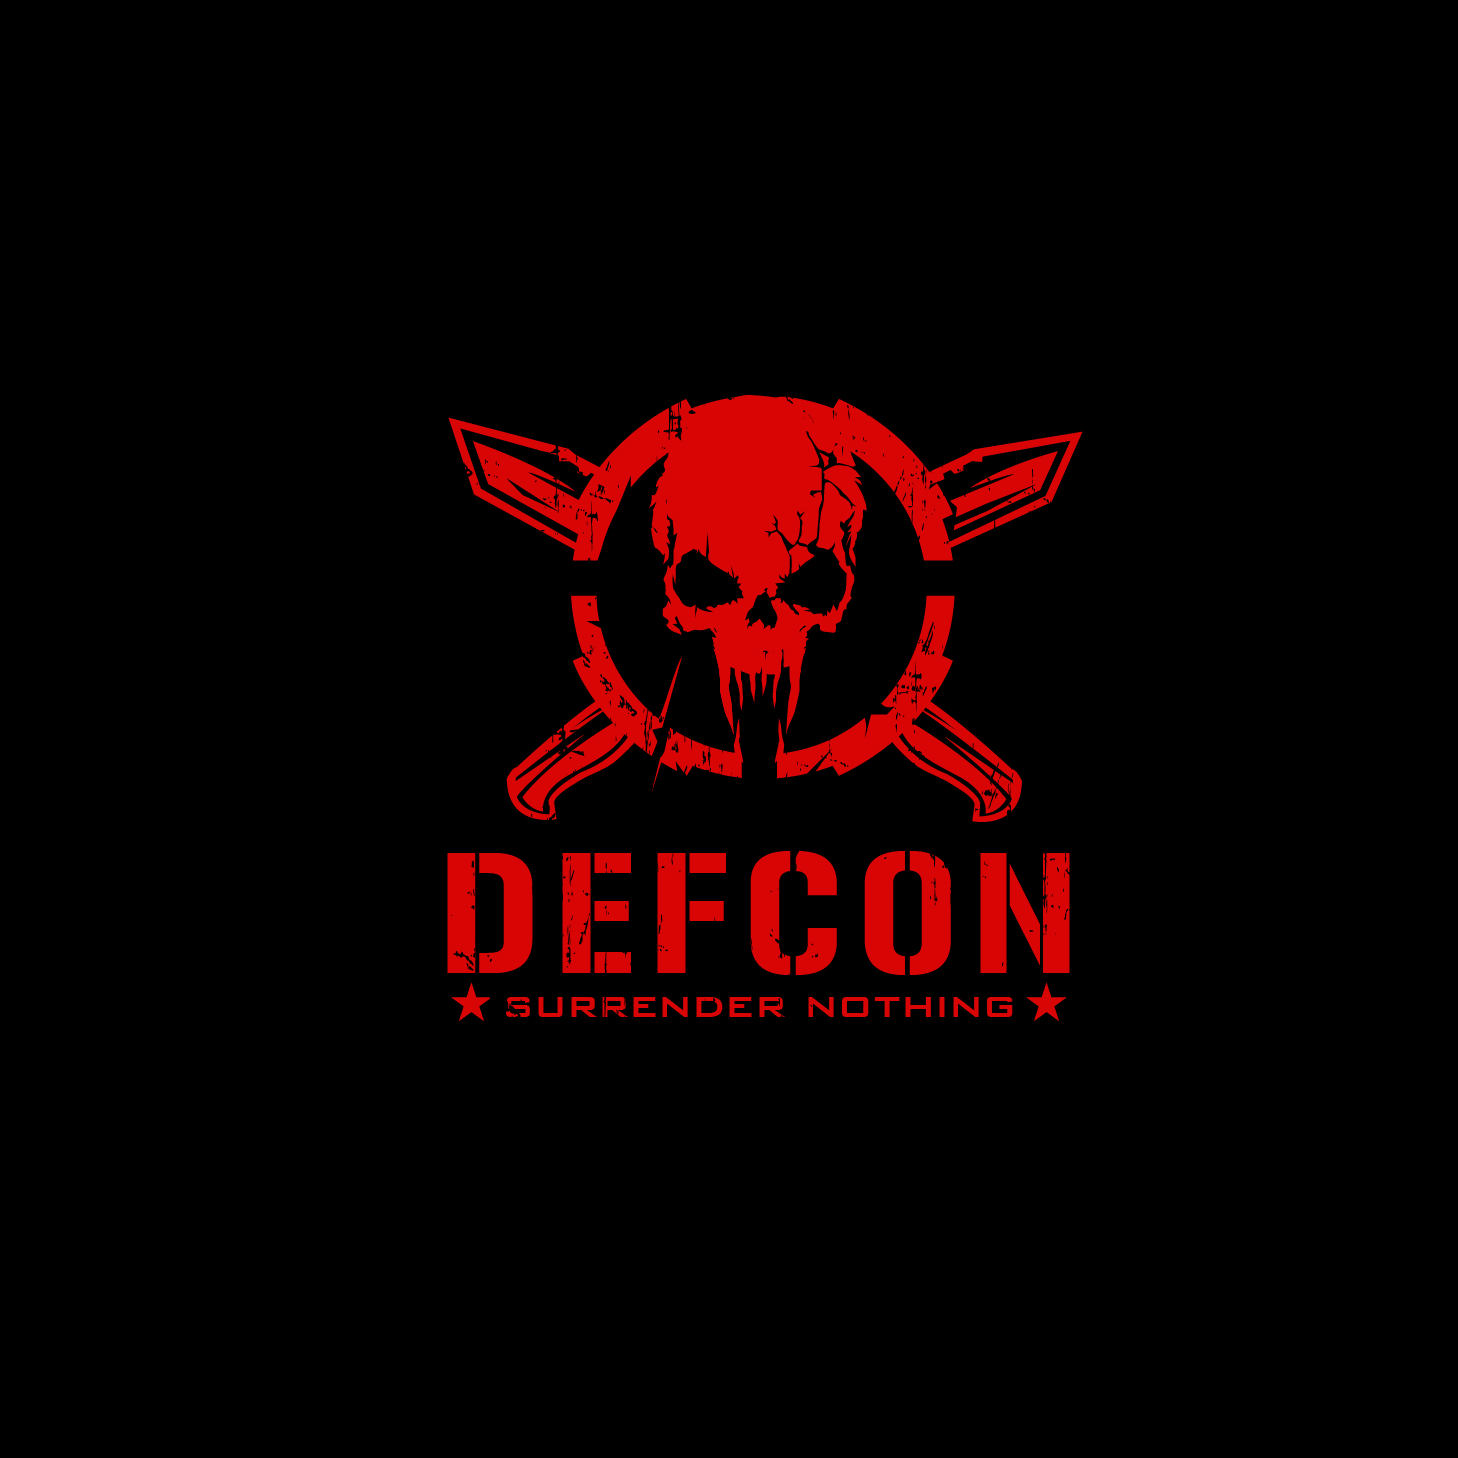 Bold, Serious, It Professional Logo Design for Defcon.